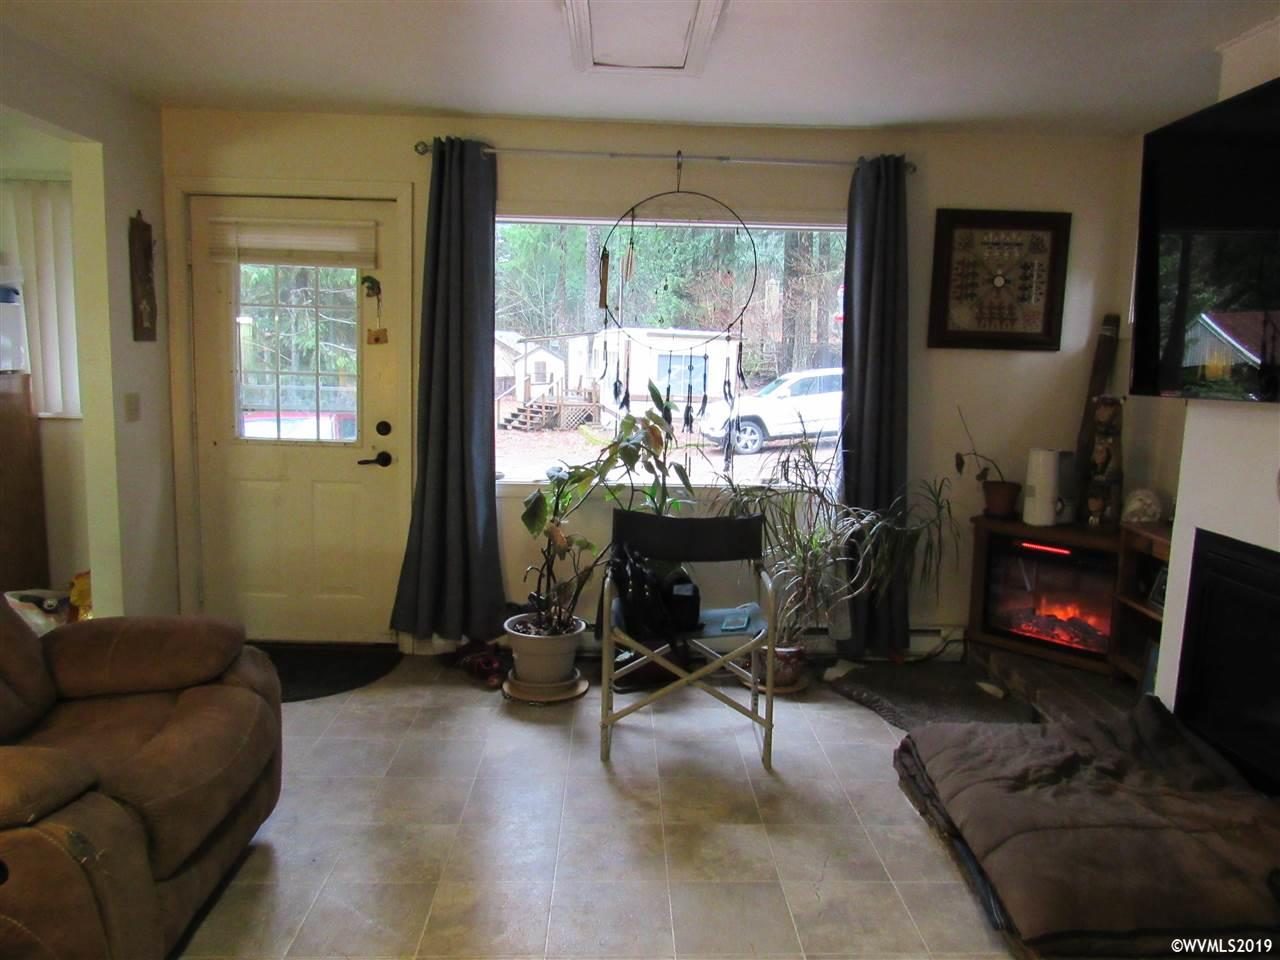 70 Tumble St, Detroit, Oregon 97342, 2 Bedrooms Bedrooms, ,1 BathroomBathrooms,Residence,For sale,70 Tumble St,758440